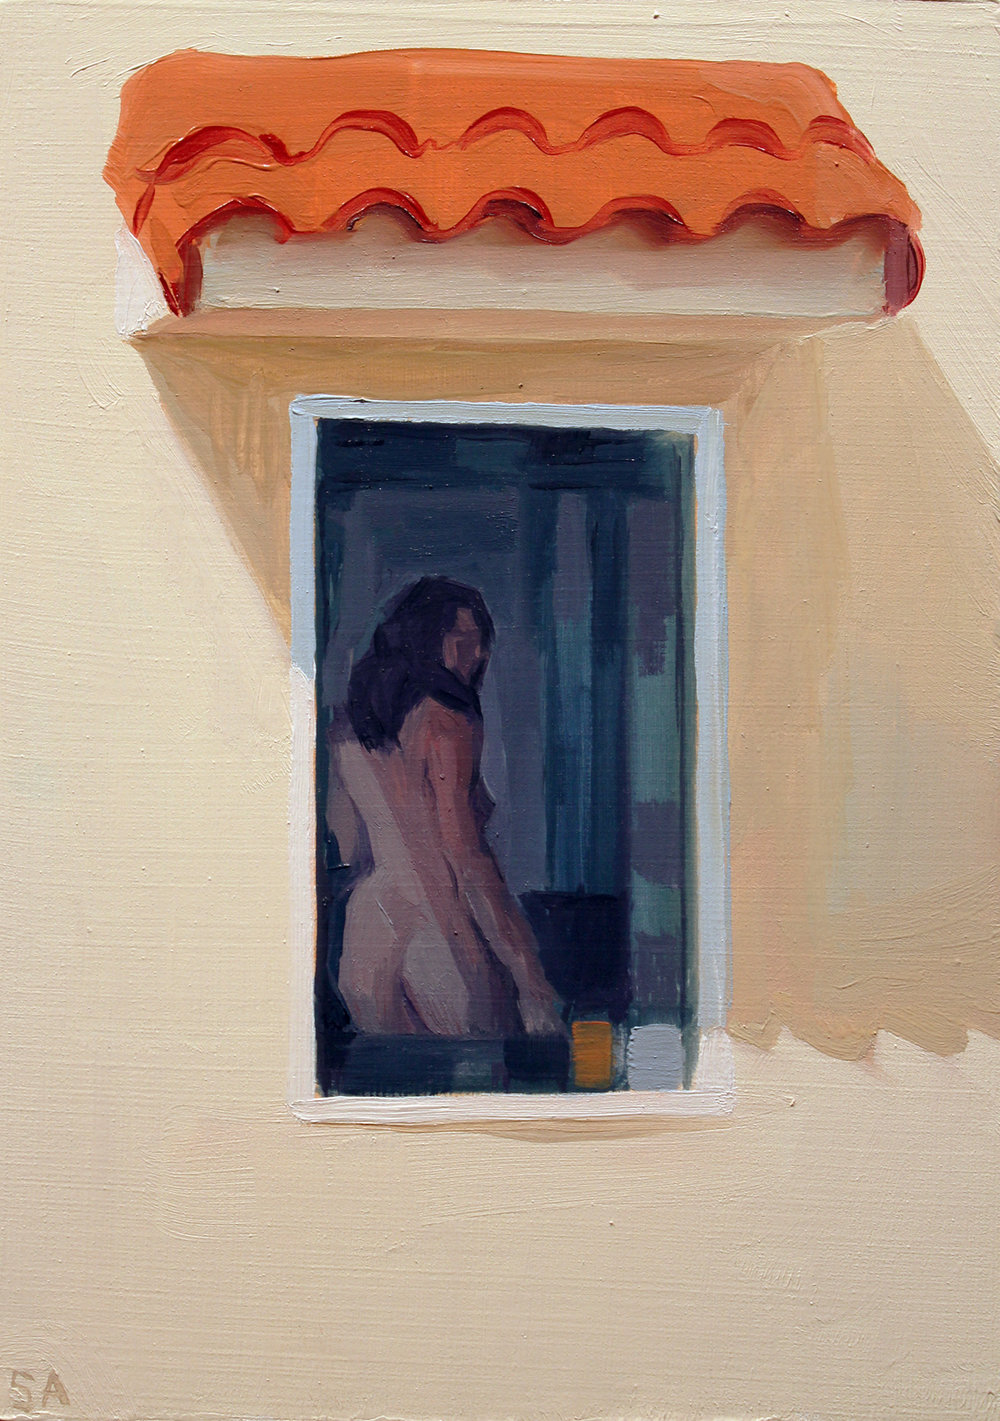 "Study for ""Noon Moon"", oil on wood, 5 x 7 inches, 2017"